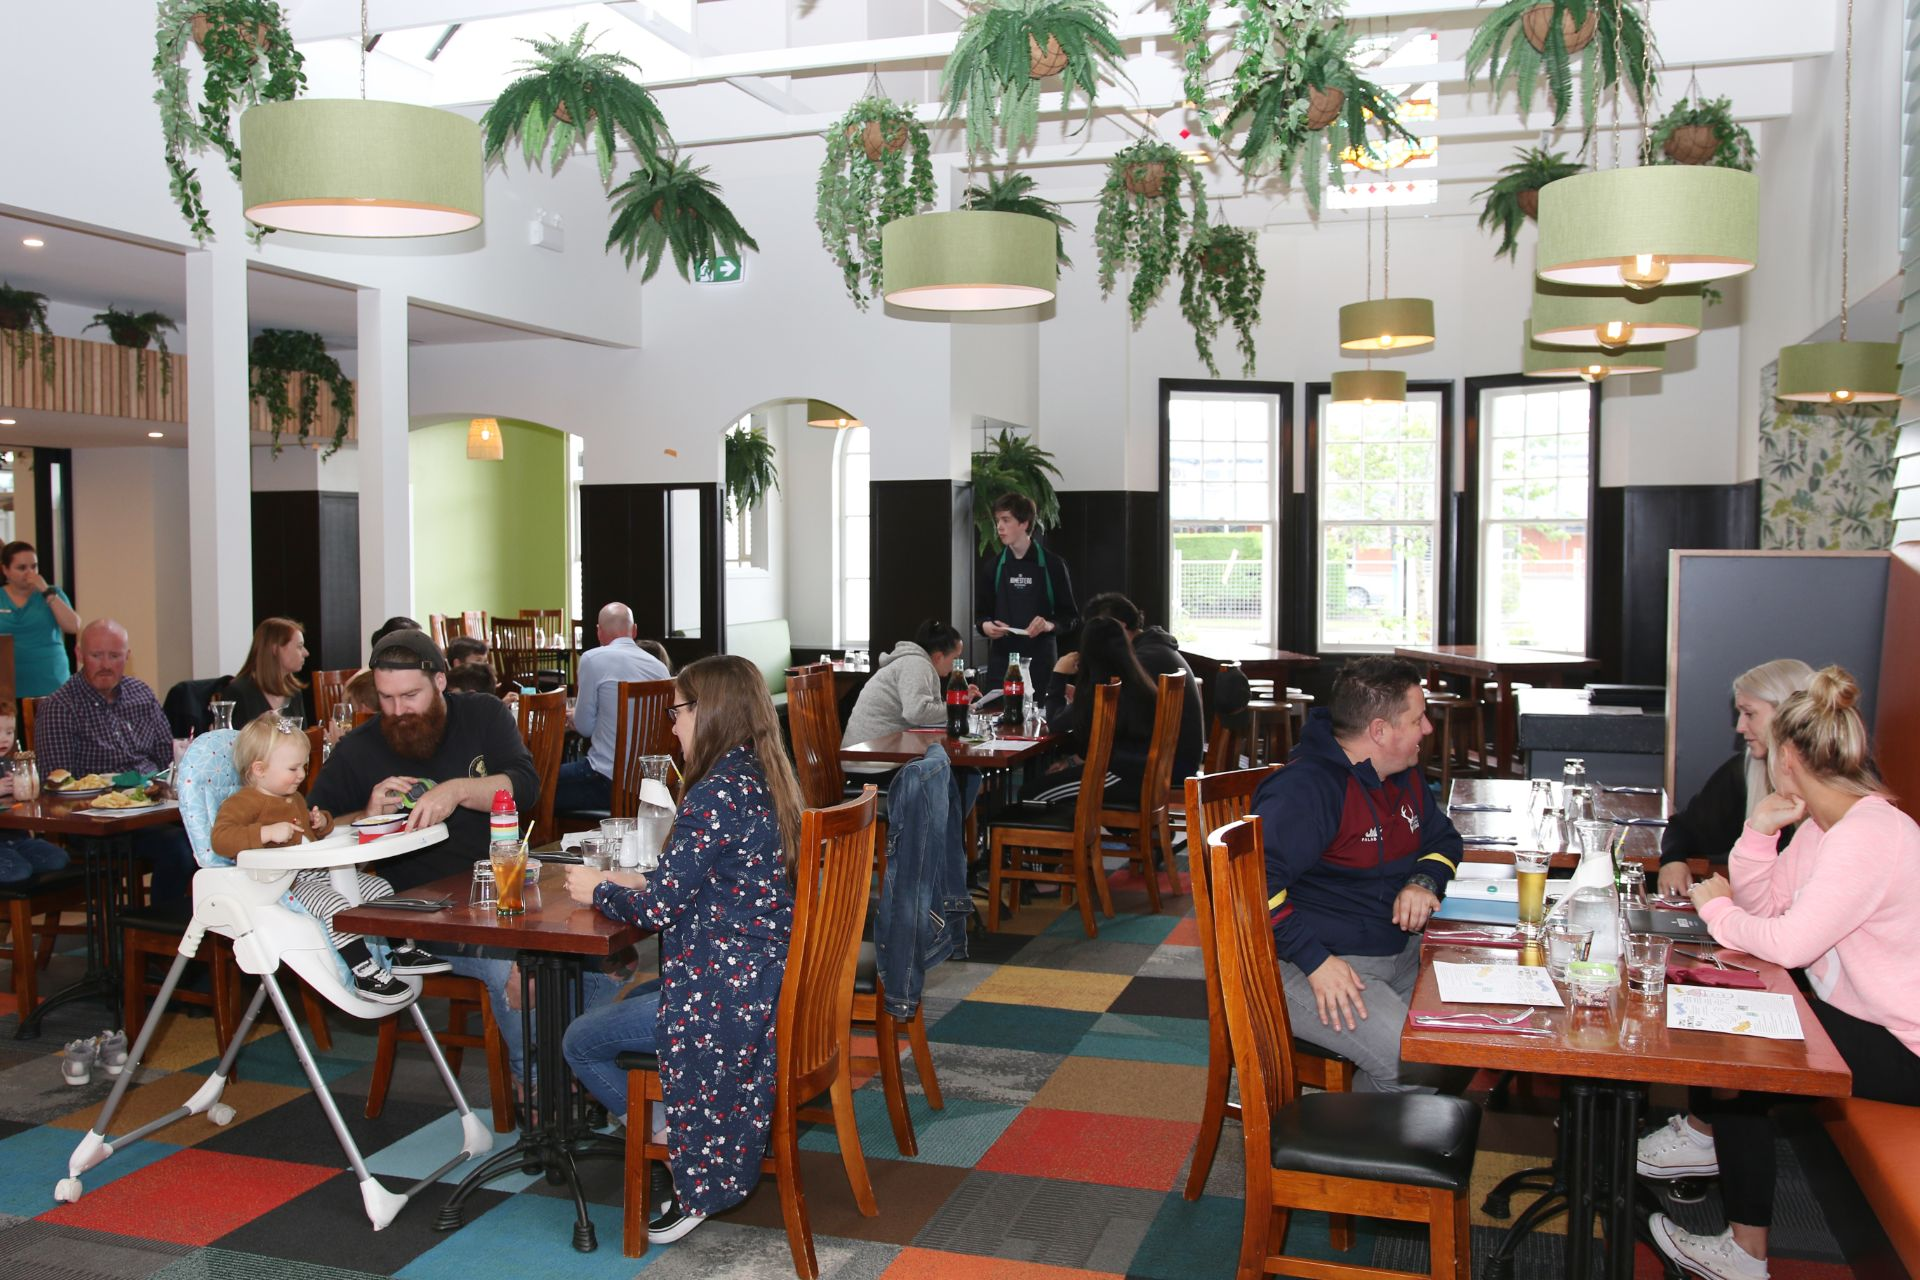 Happy diners at The Homestead Restaurant Invercargill